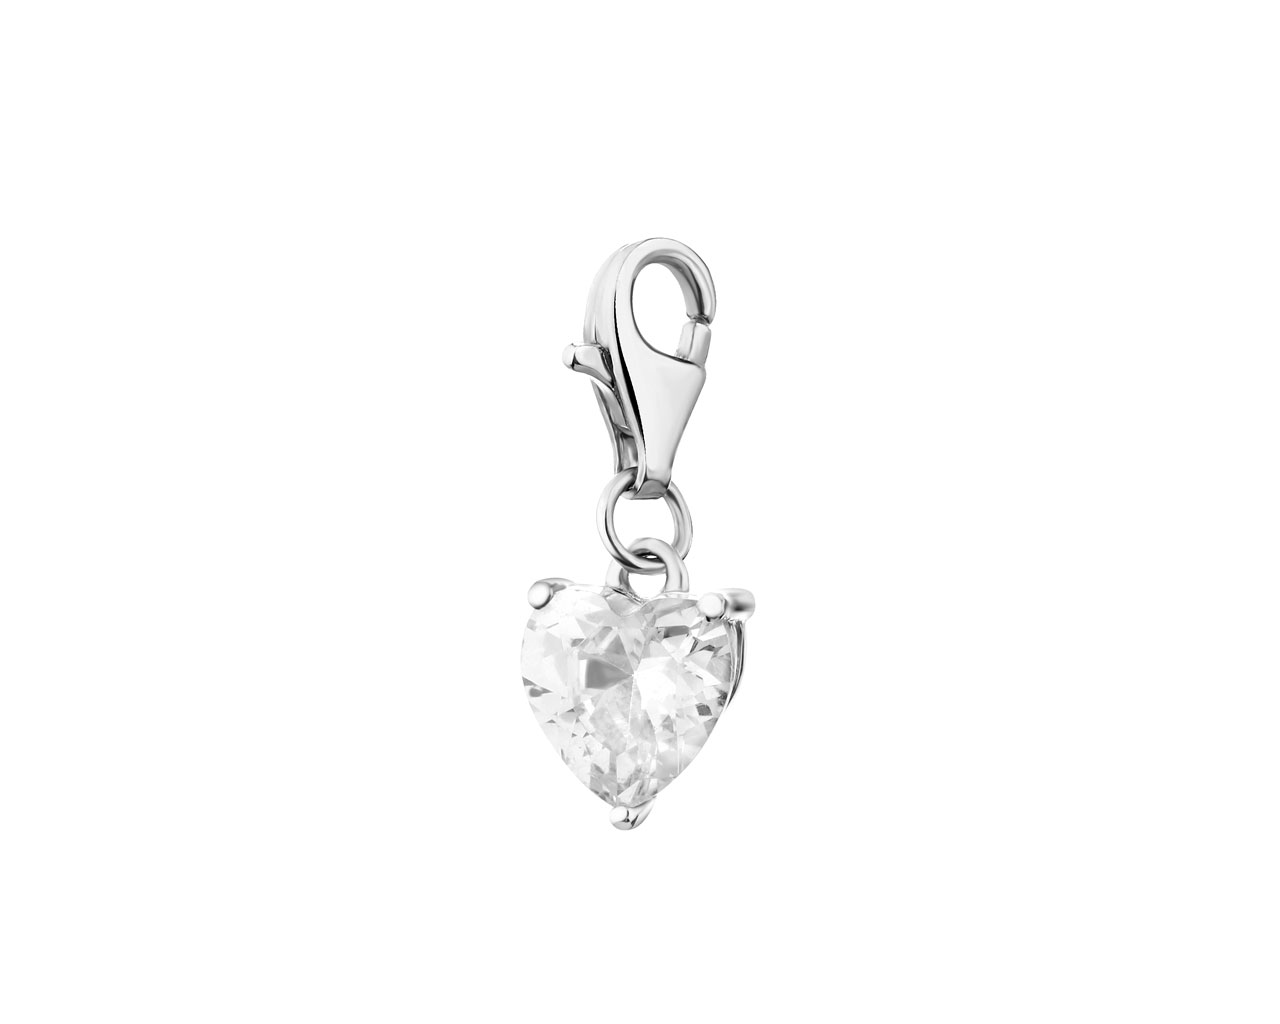 Sterling Silver Charms Pendant with Cubic Zirconia - Heart